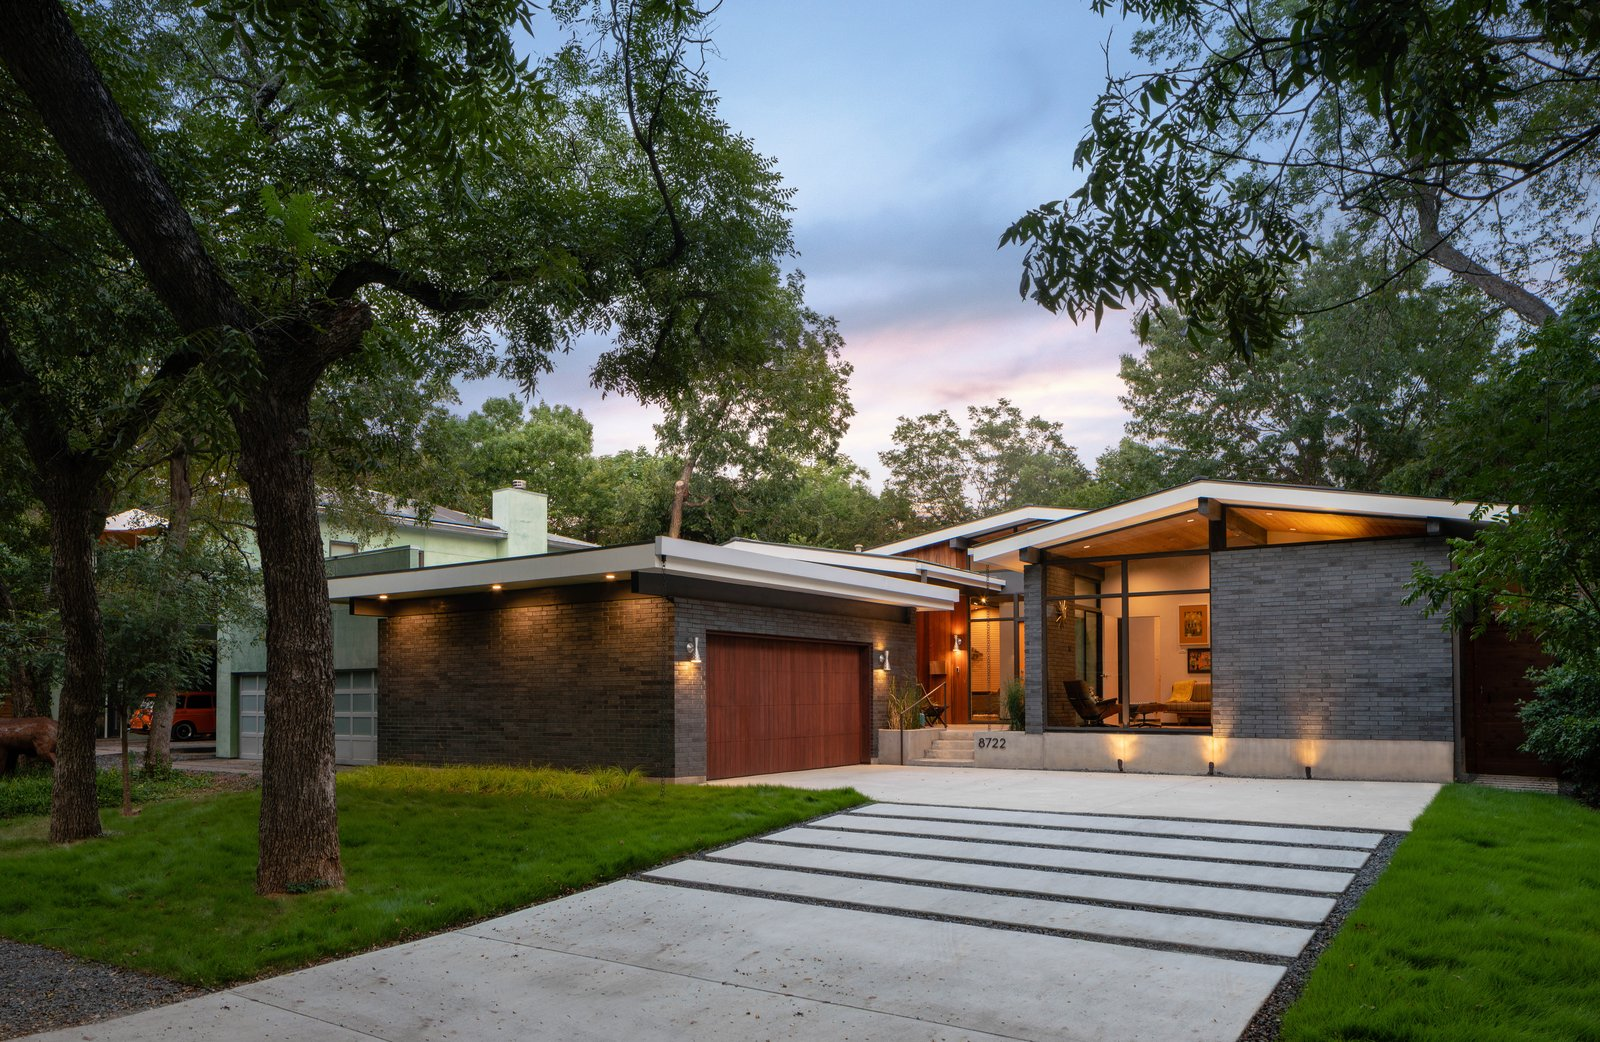 House TW Modern Home In Dallas Texas By M Gooden Design On Dwell